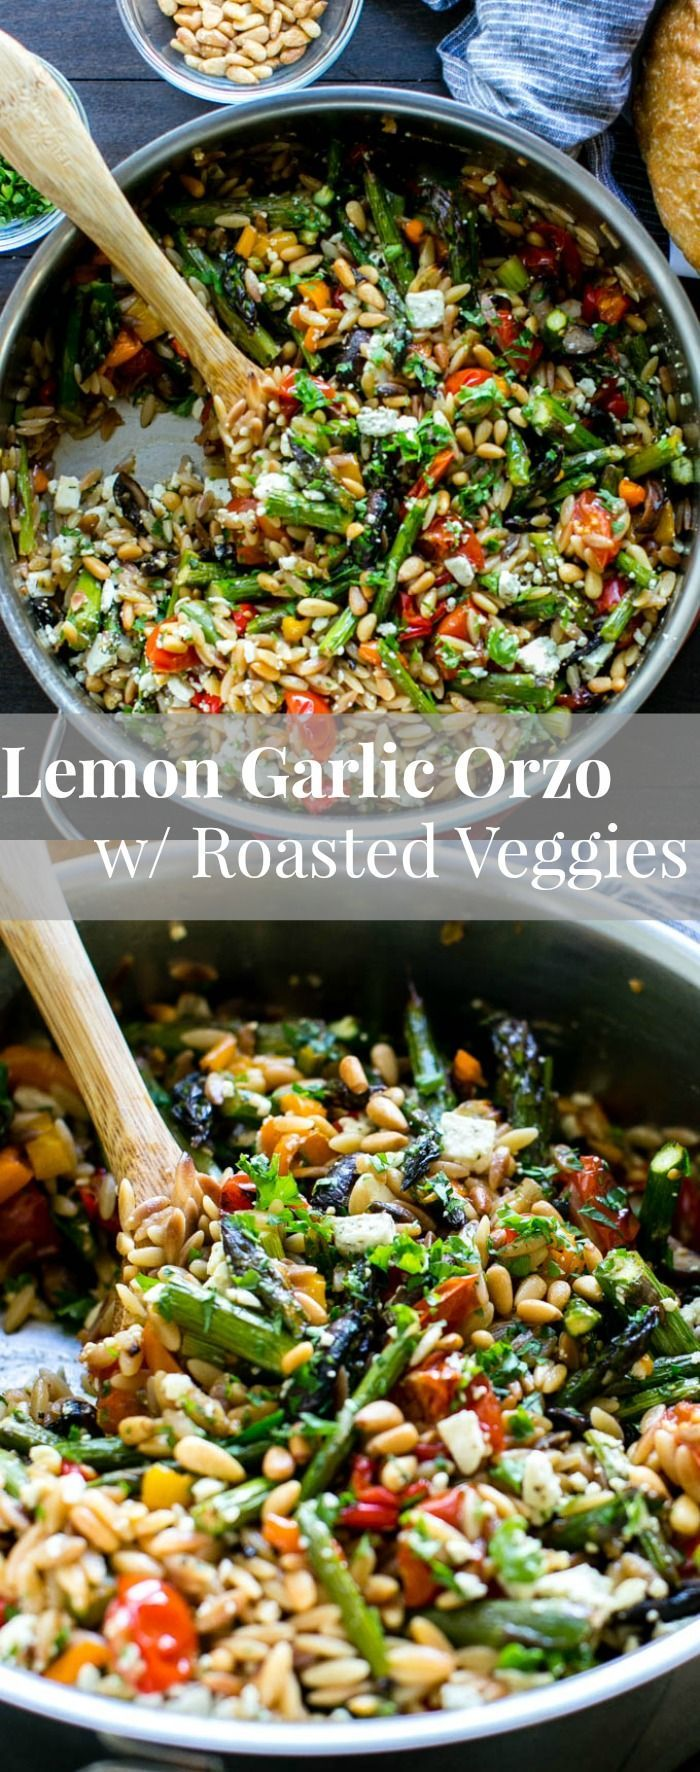 Lemon Garlic Orzo with Roasted Vegetables, feta and pine nuts is packed with texture and flavor. Delicious served warm or chilled and makes fabulous leftovers or addition to a picnic, or pot luck. Vegetarian. | Pasta | Salad Skin Nutrition